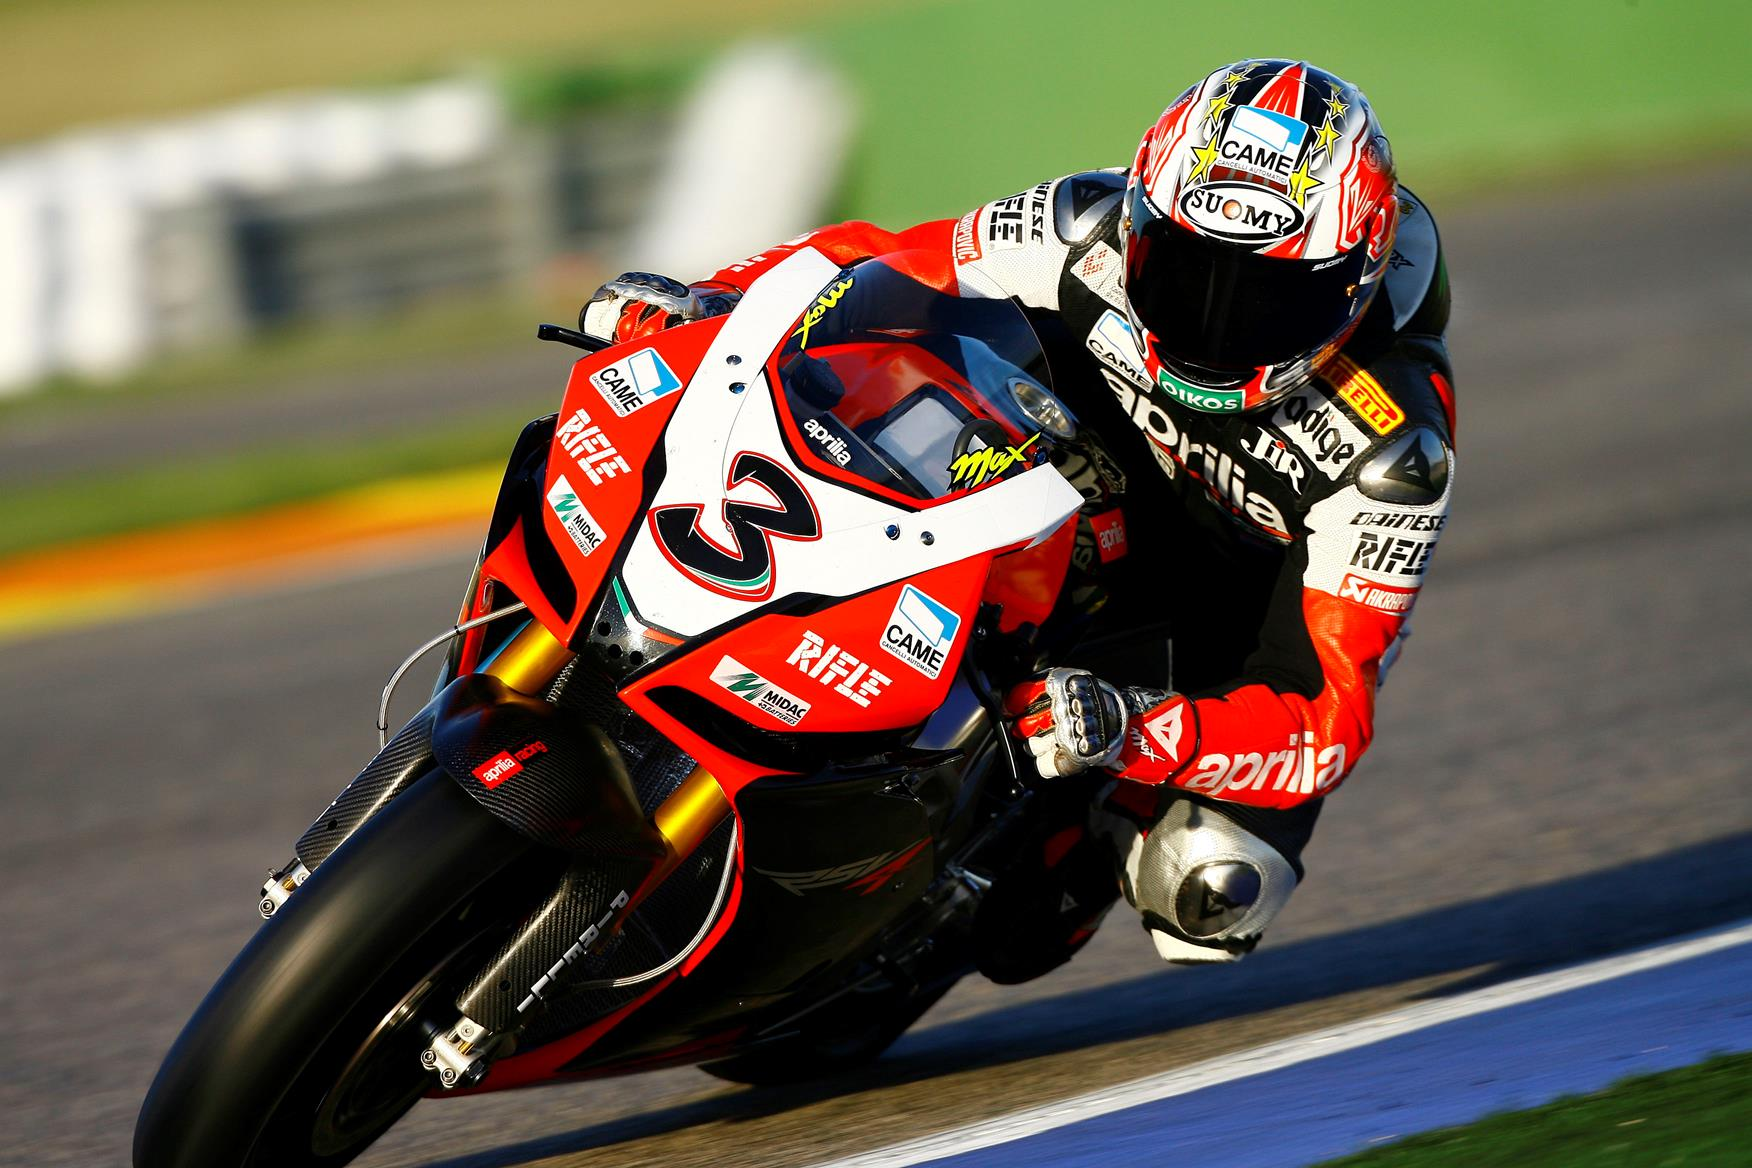 Biaggi ends 2009 on top at valencia test mcn biaggi saved his best until last at valencia thecheapjerseys